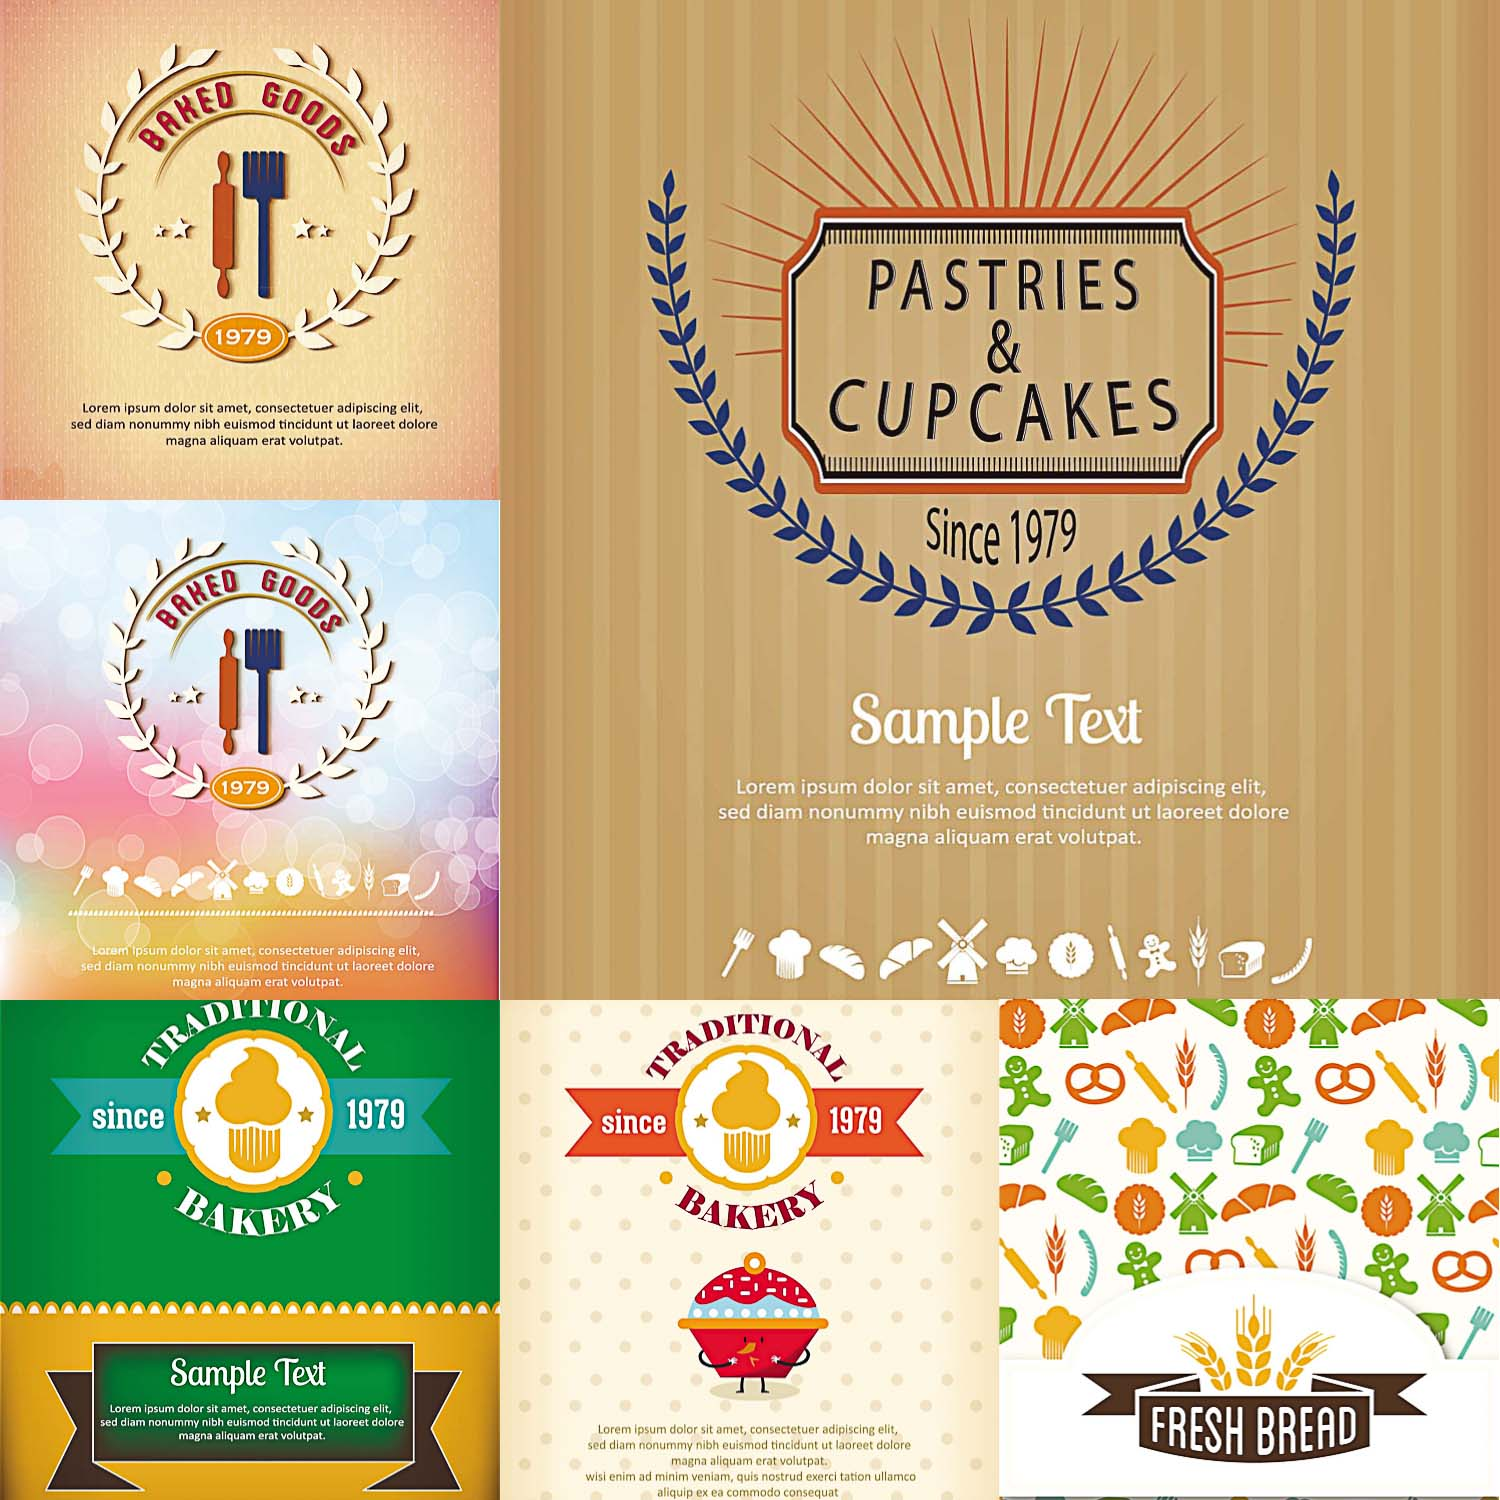 cards for menu and bakery